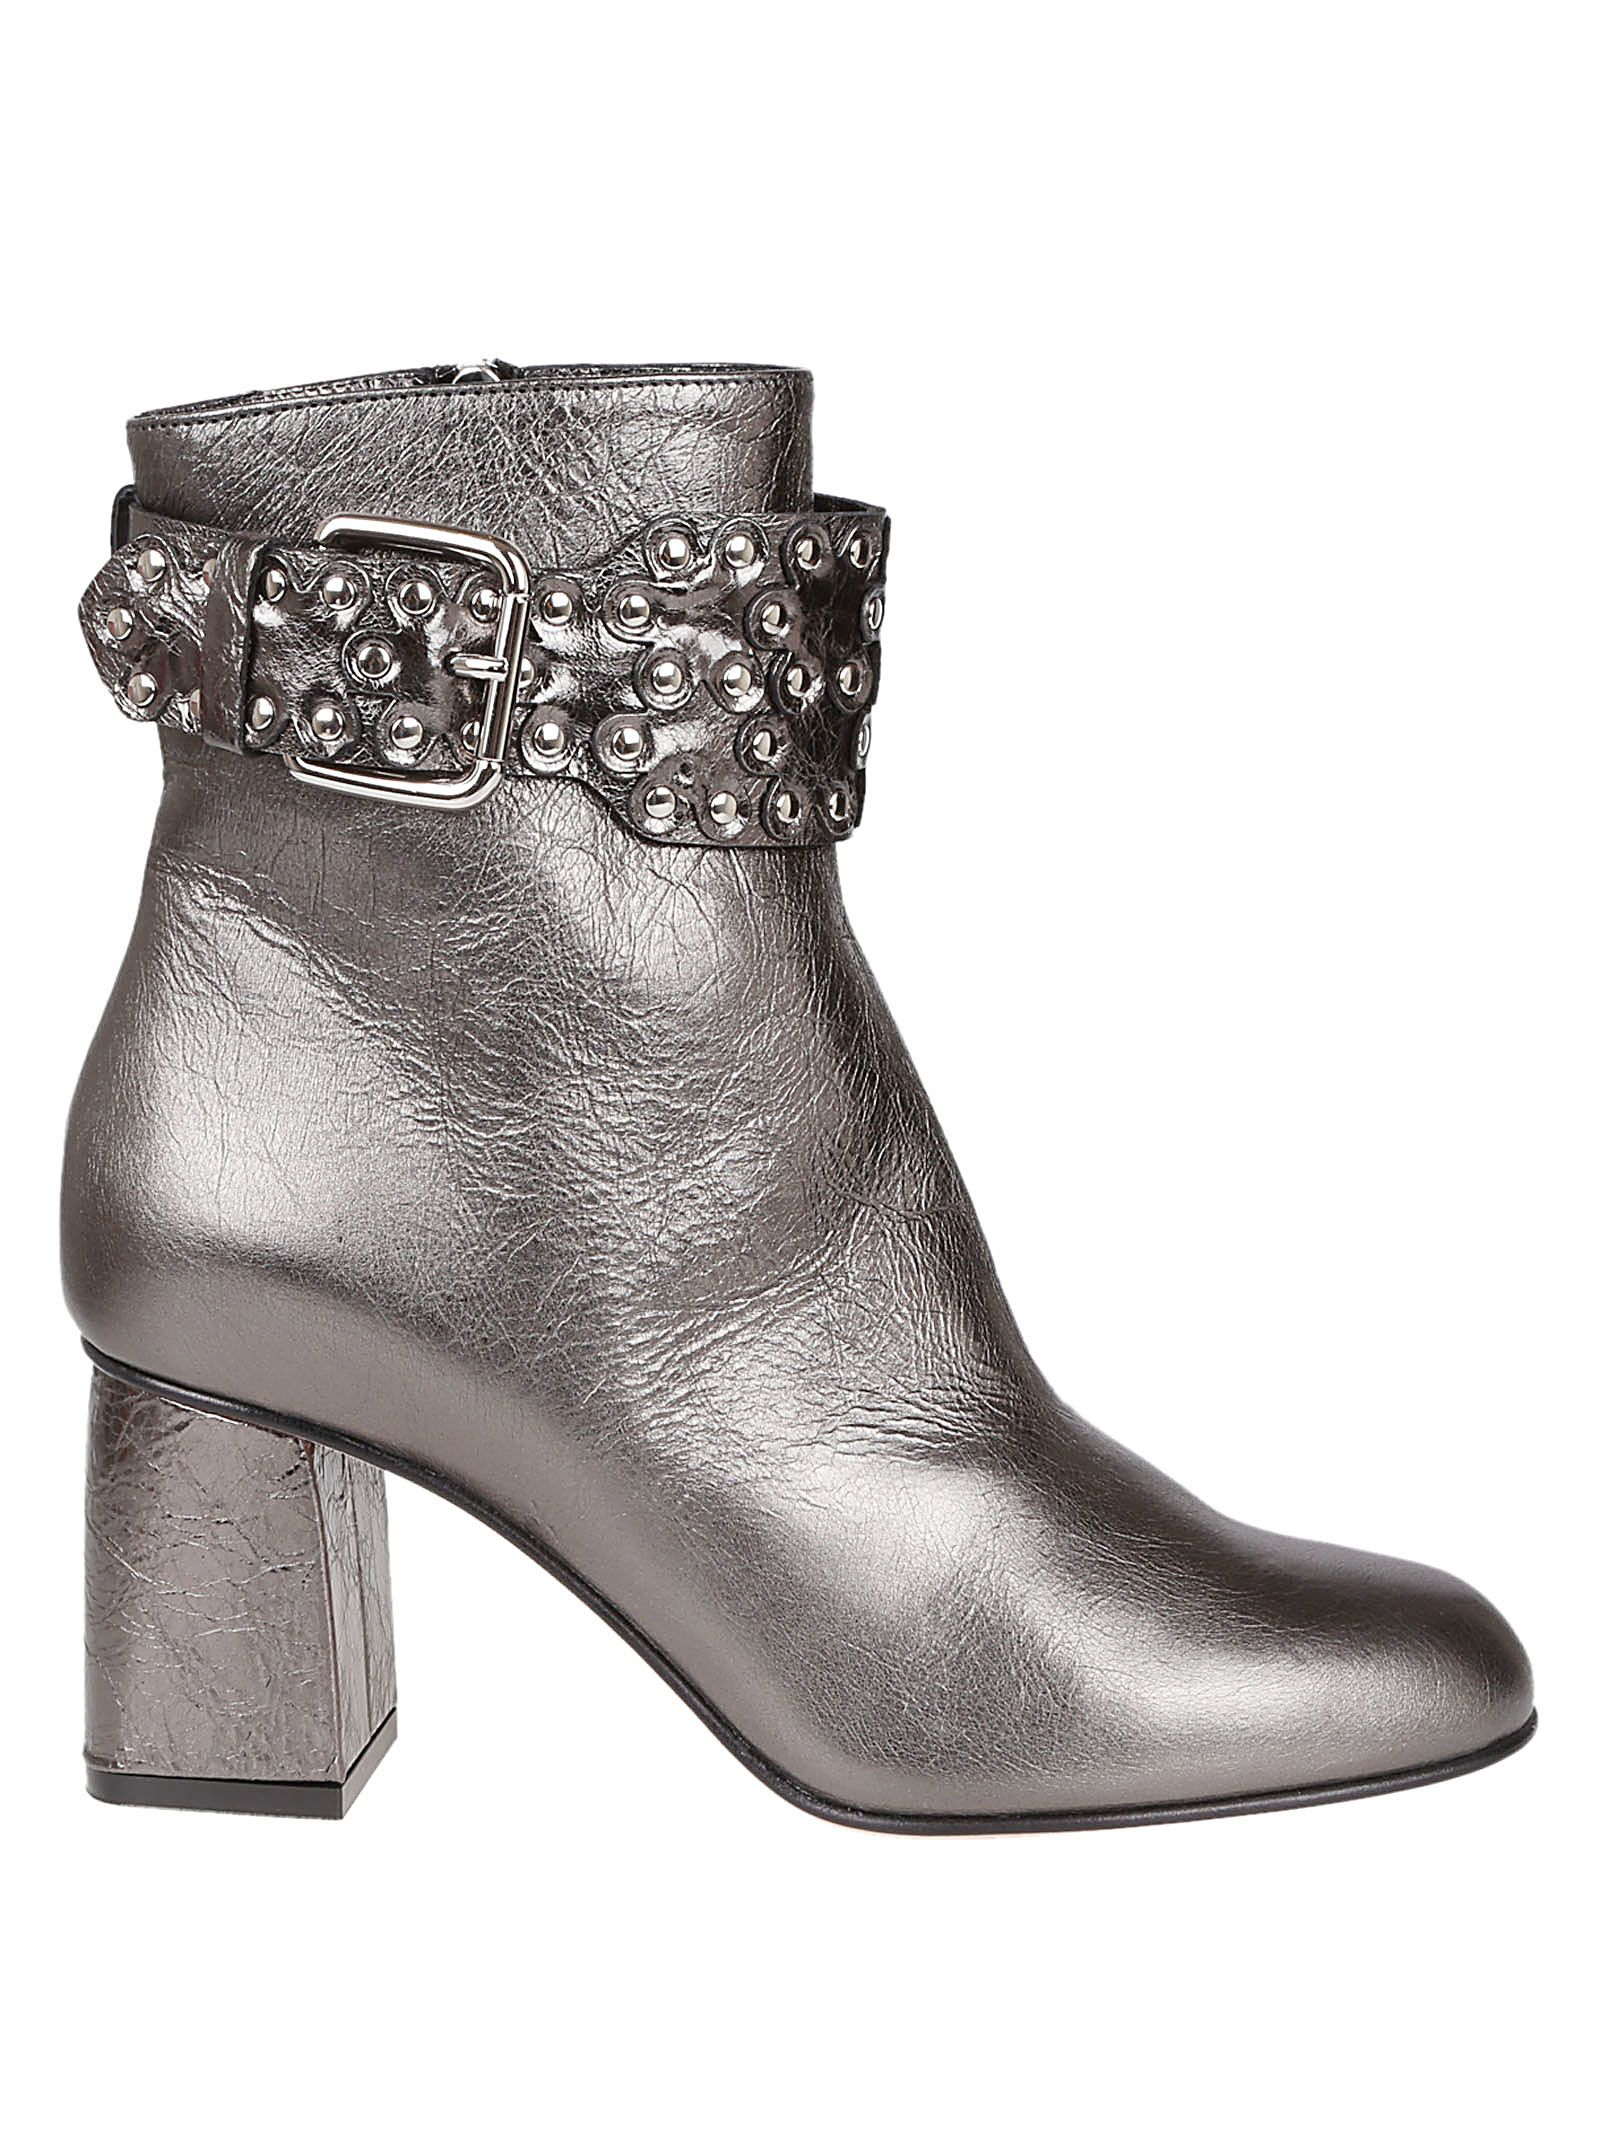 Red Valentino Studded Ankle Boots